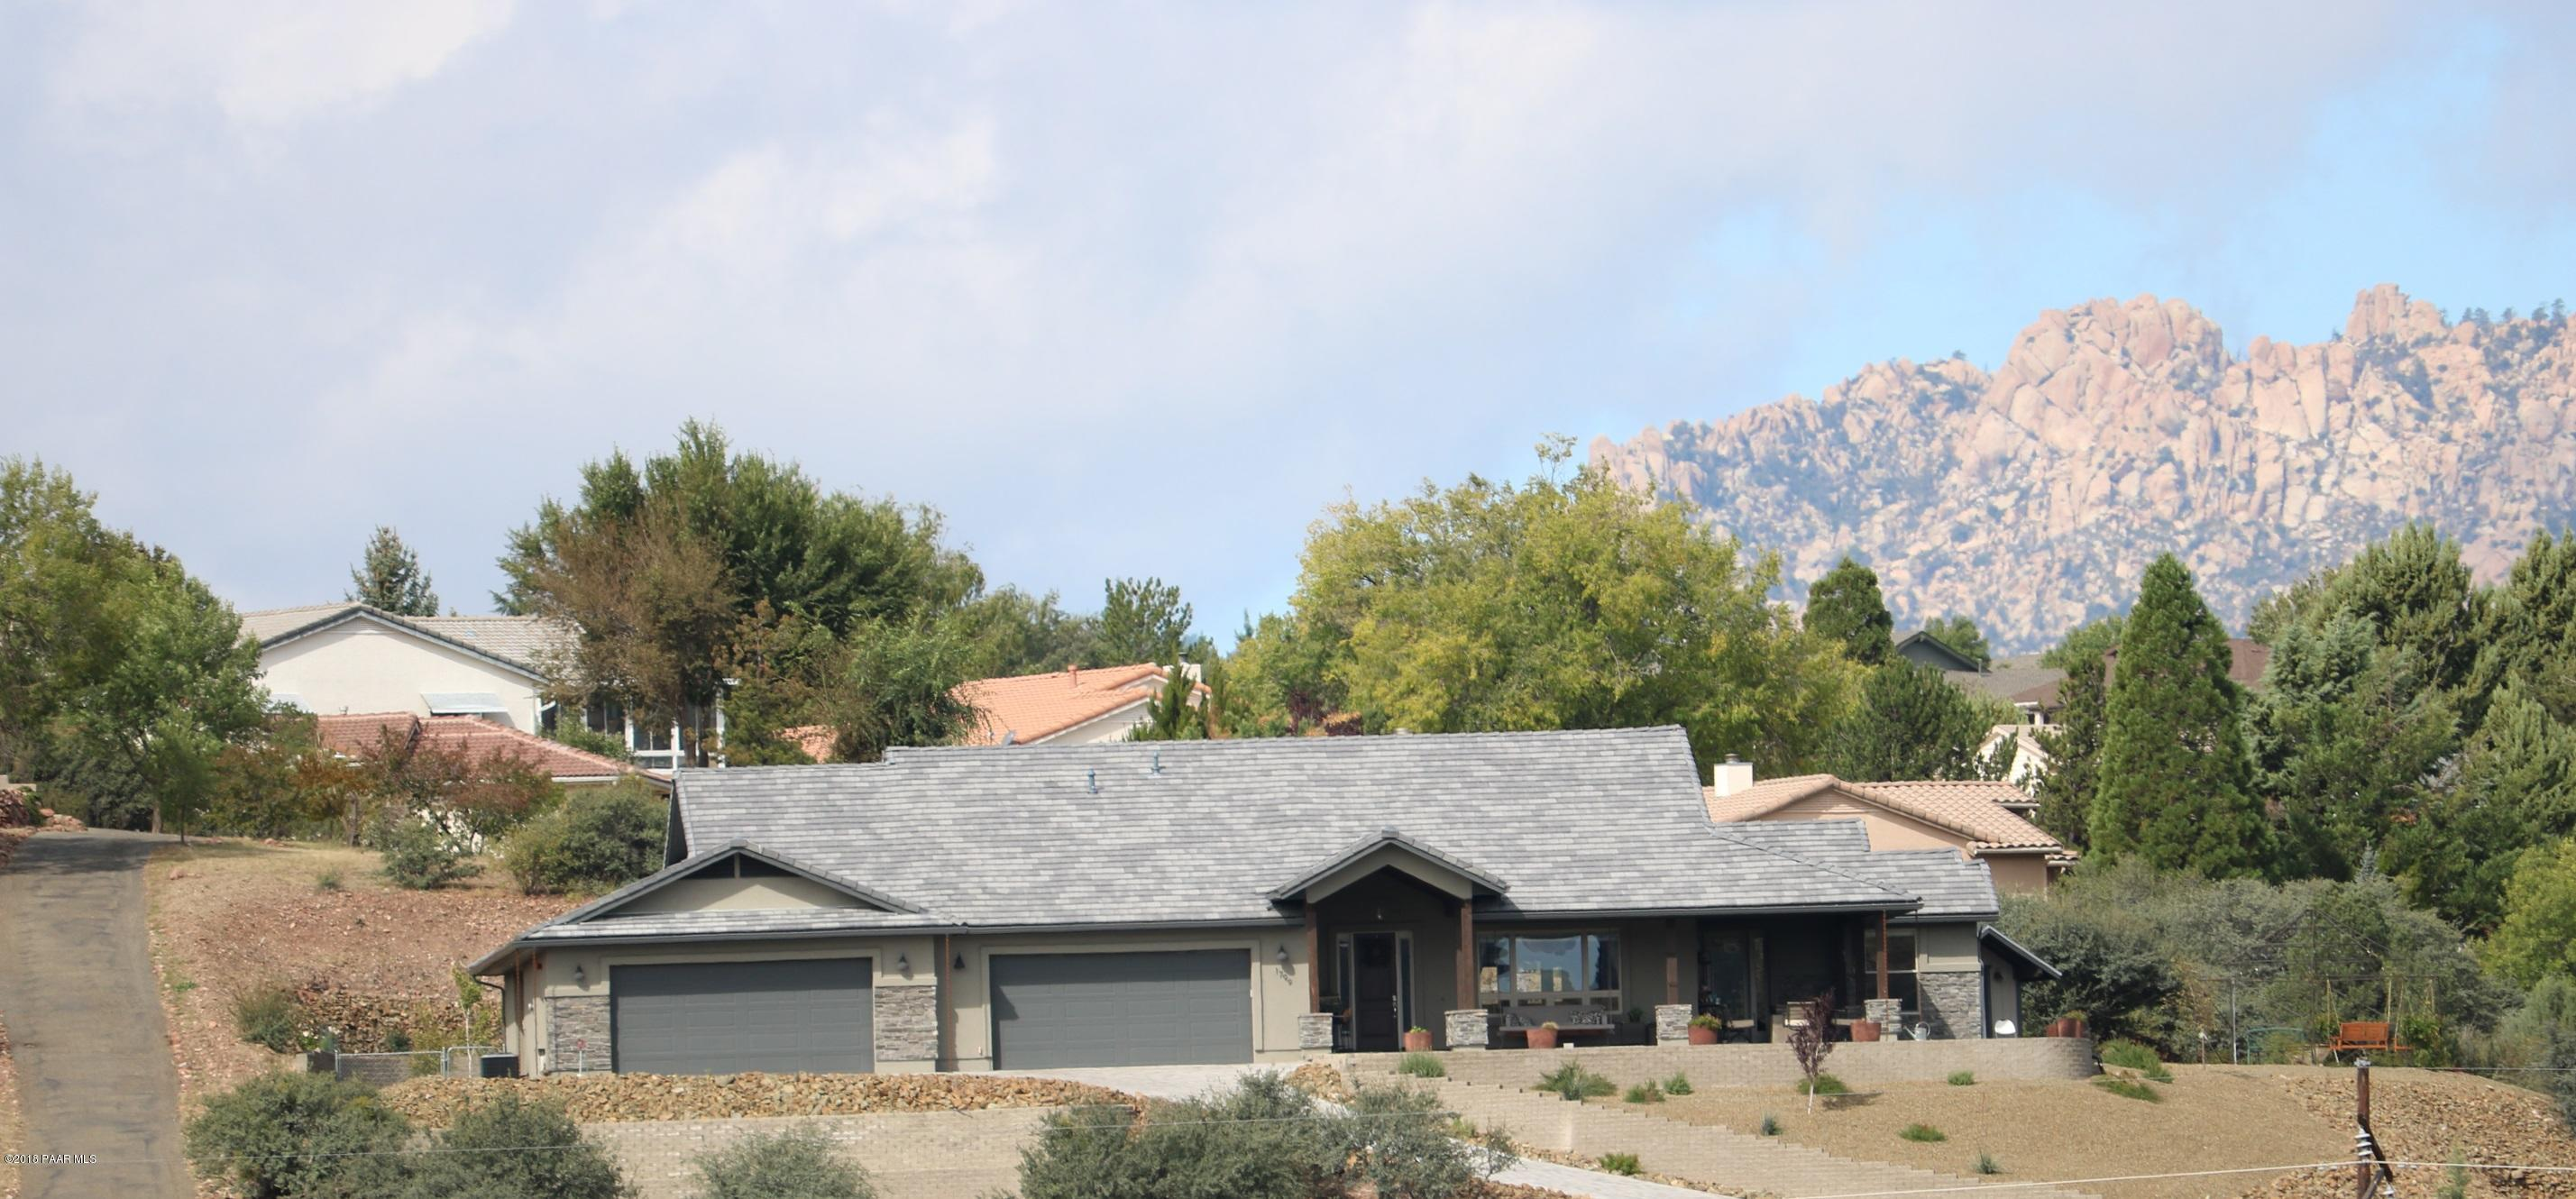 1799 S Savage Lane, Prescott Az 86301